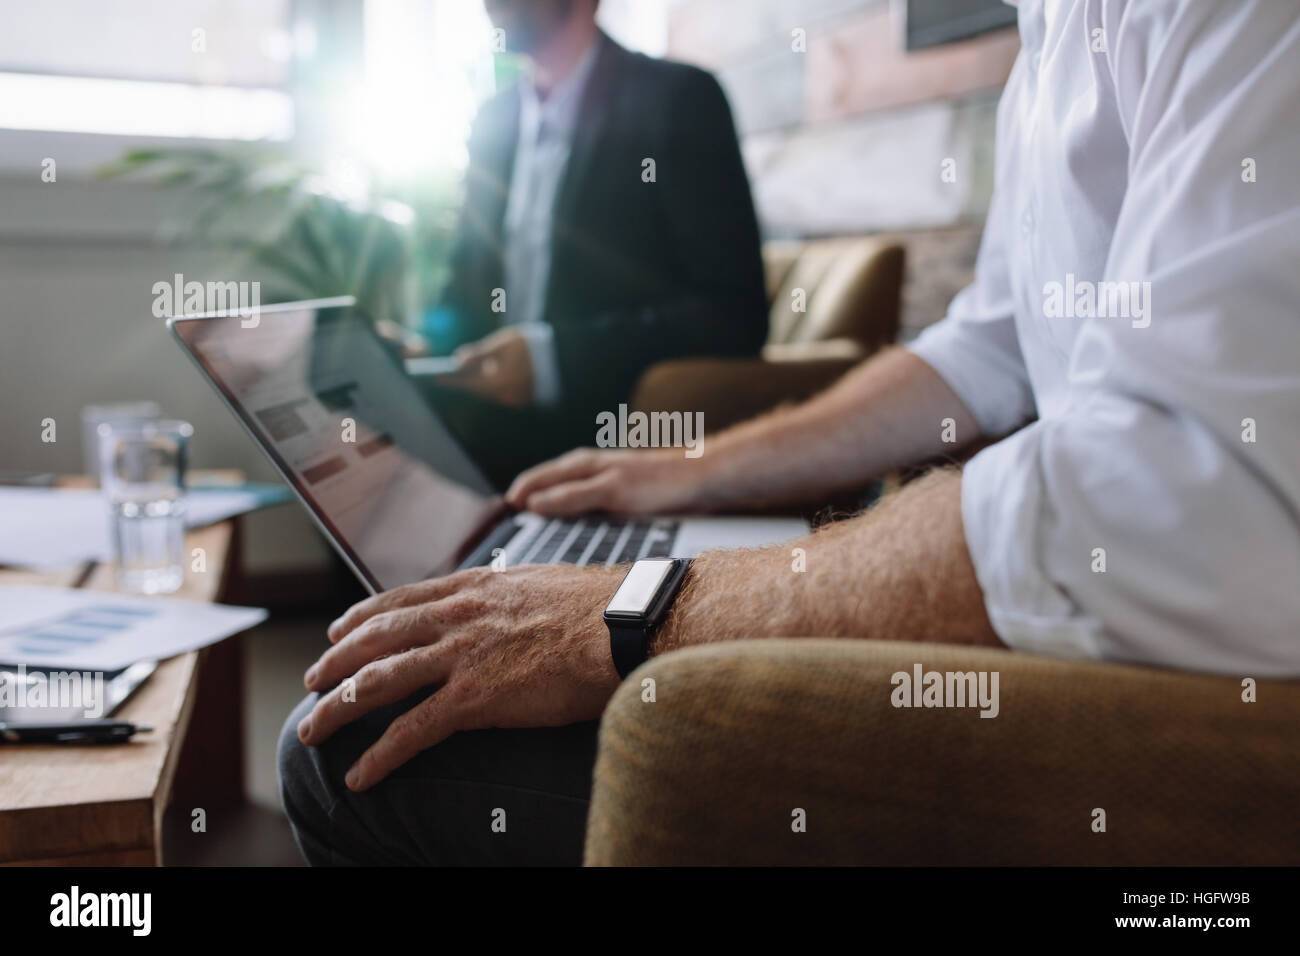 Businessman working on laptop during corporate meeting. Business people having a meeting in office. - Stock Image